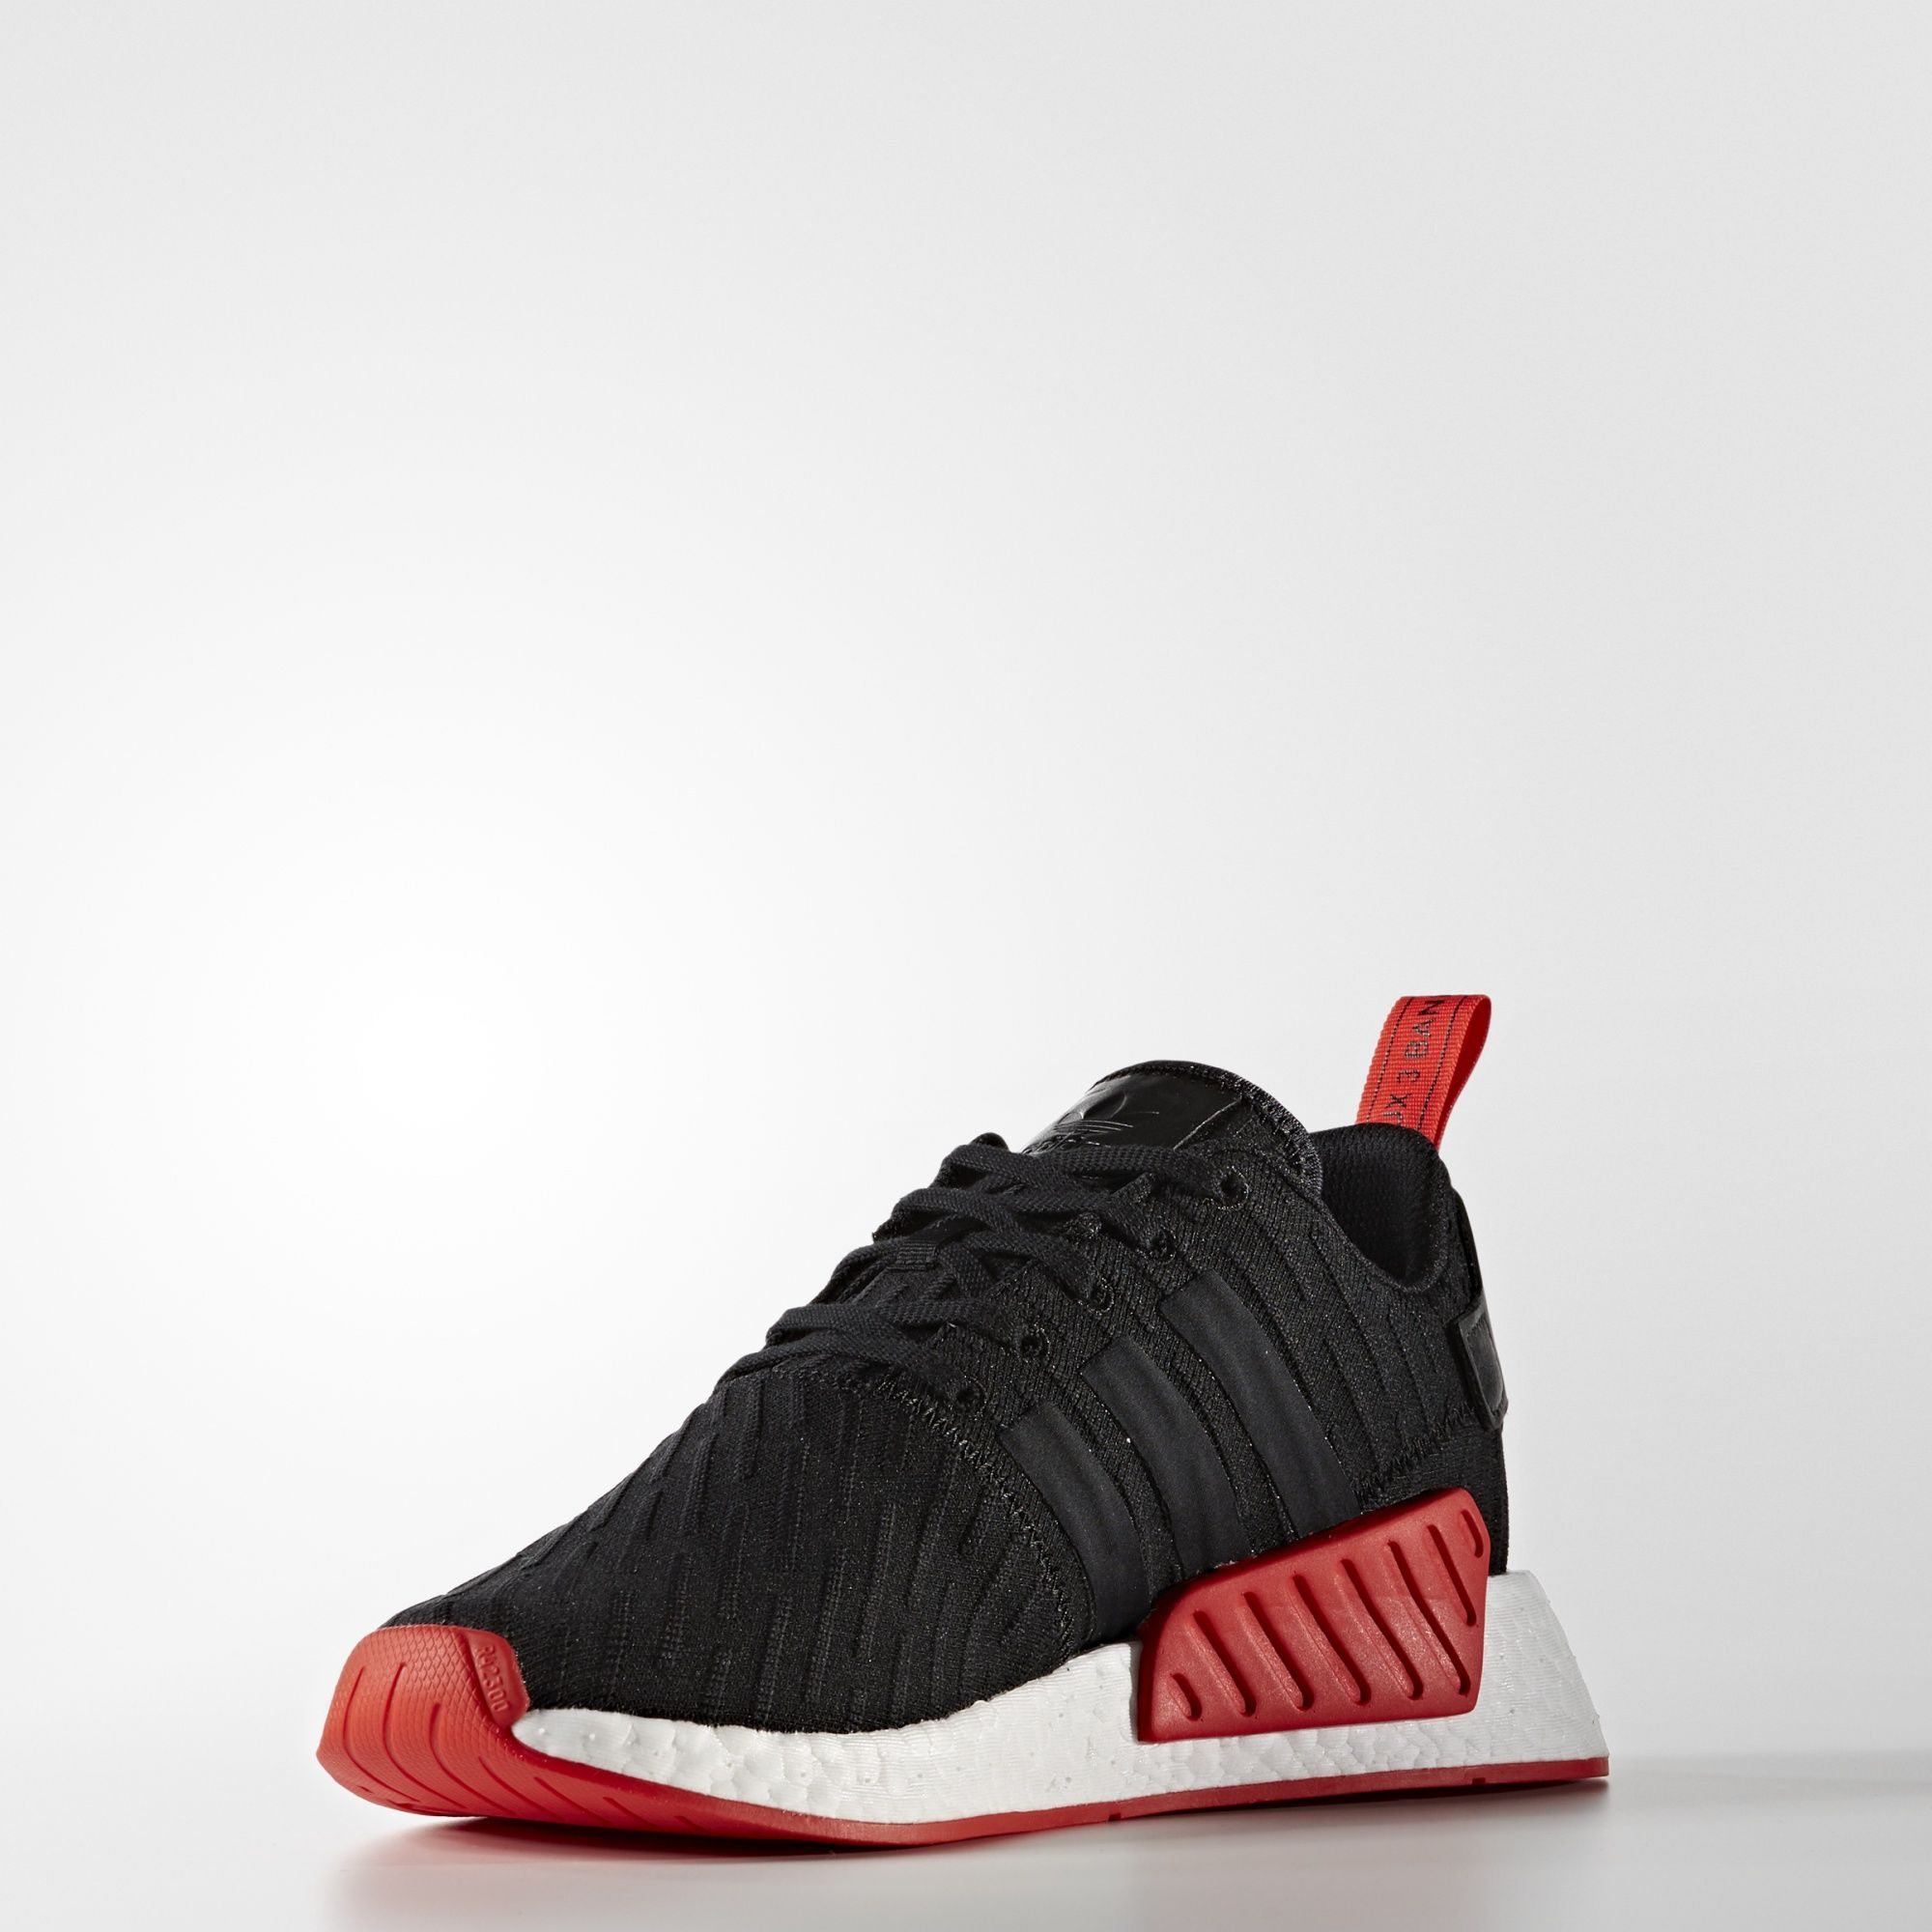 adidas nmd r2 primeknit black core red BA7252 3